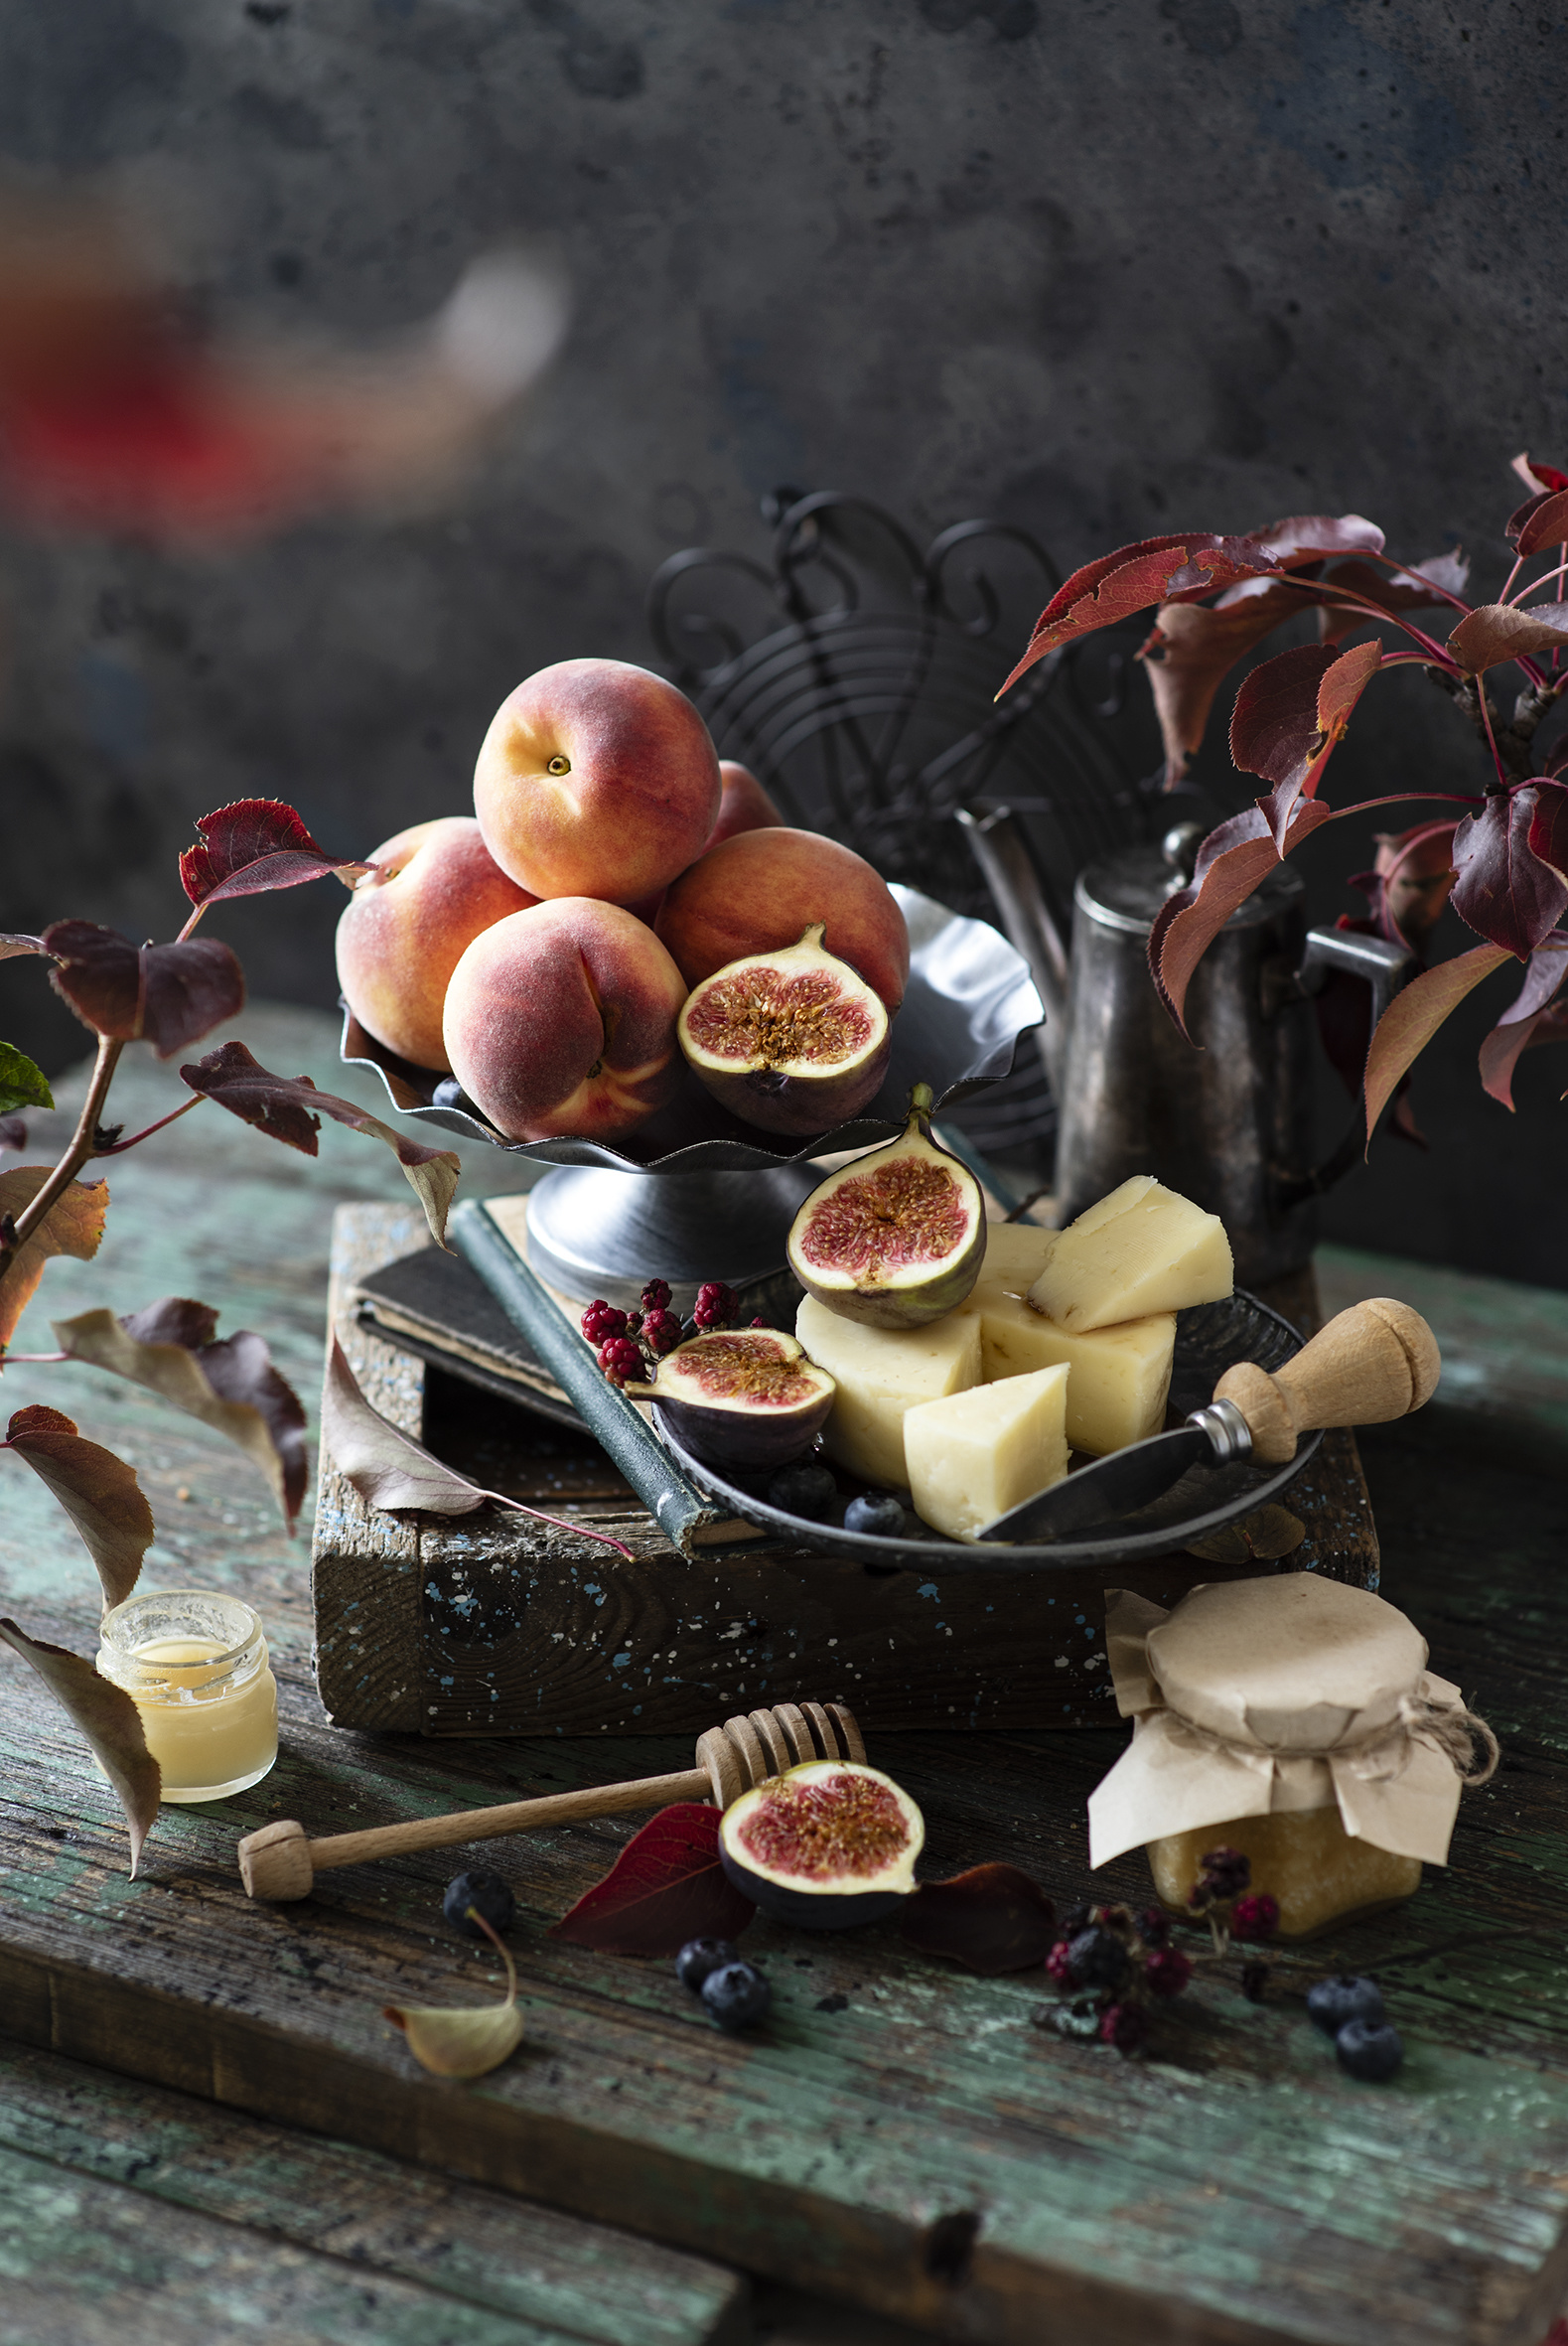 Picture Common fig Jar Cheese Peaches Blueberries Food Still-life boards  for Mobile phone figs ficus carica Wood planks